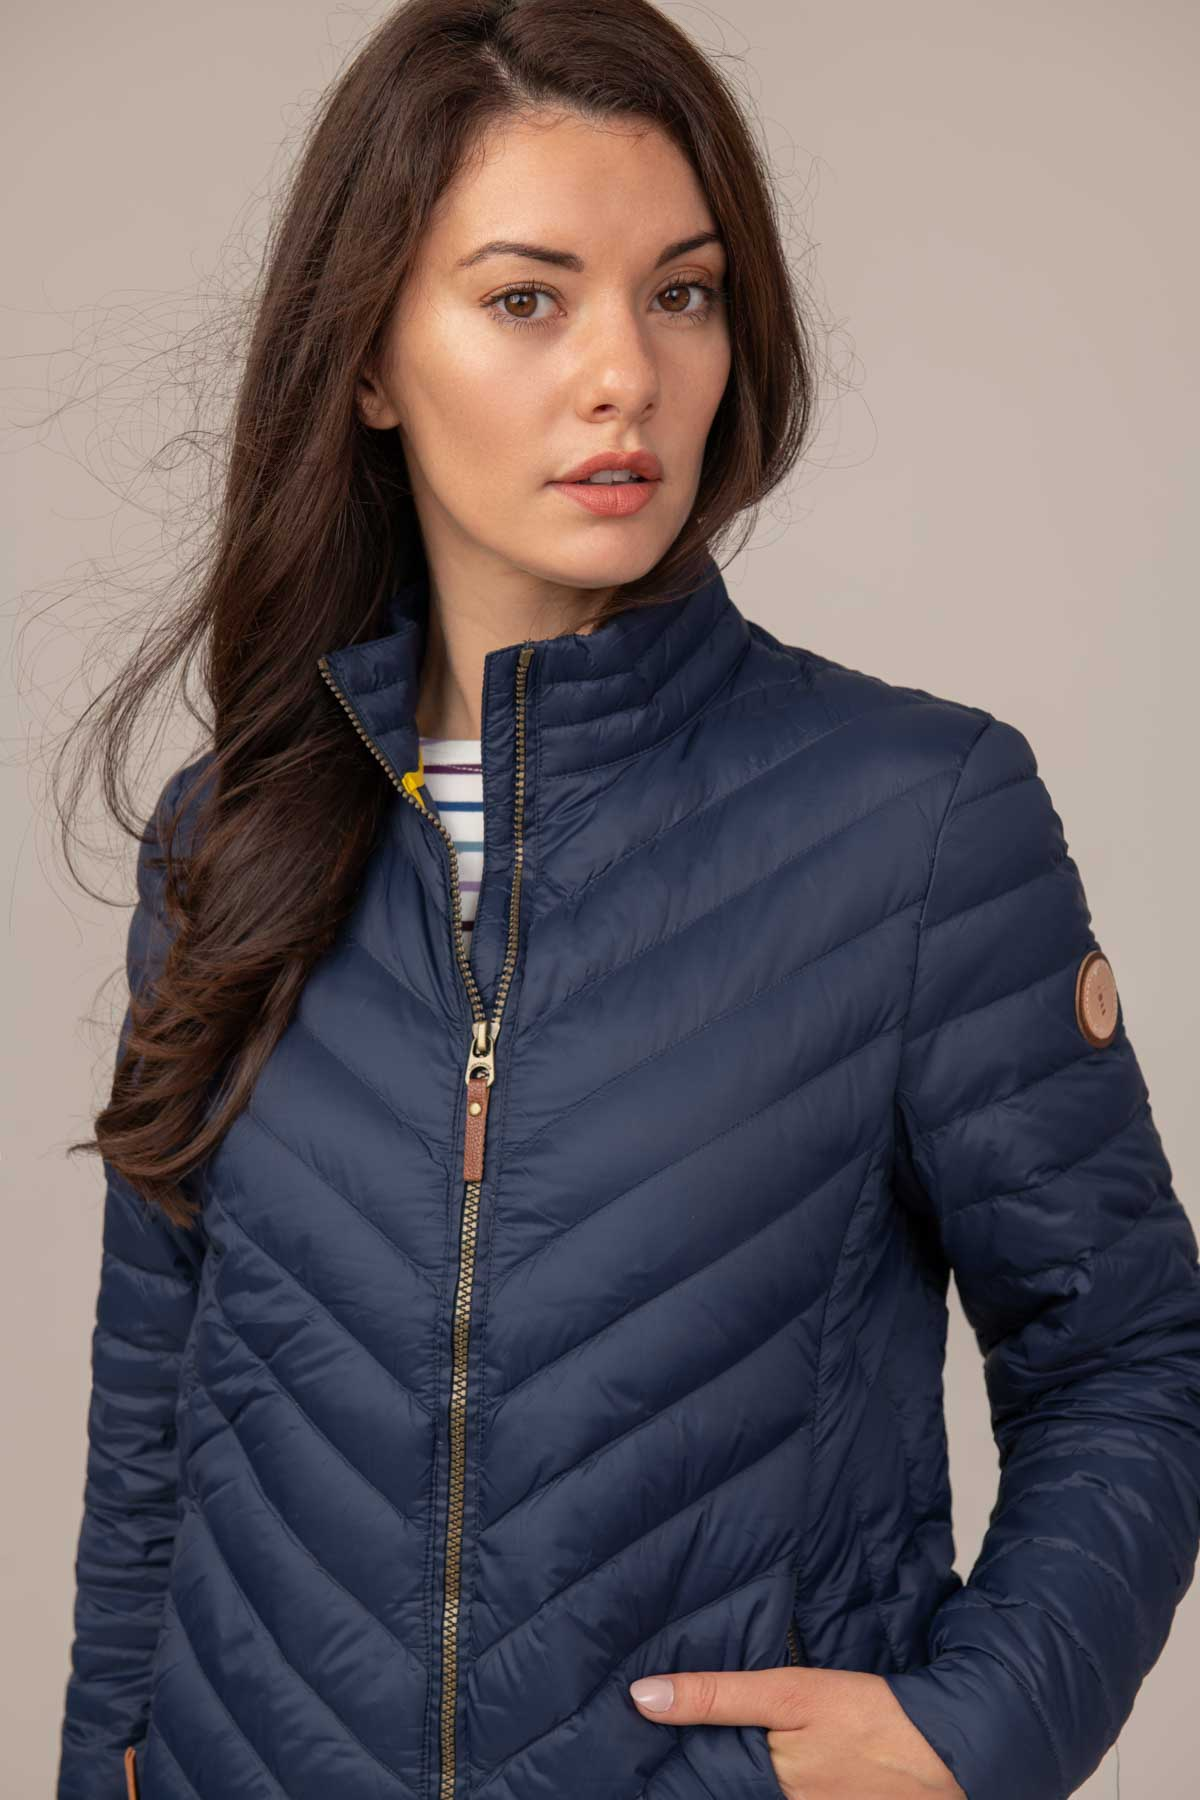 Lighthouse Lara Womens Lightweight Warm Down Jacket - Navy